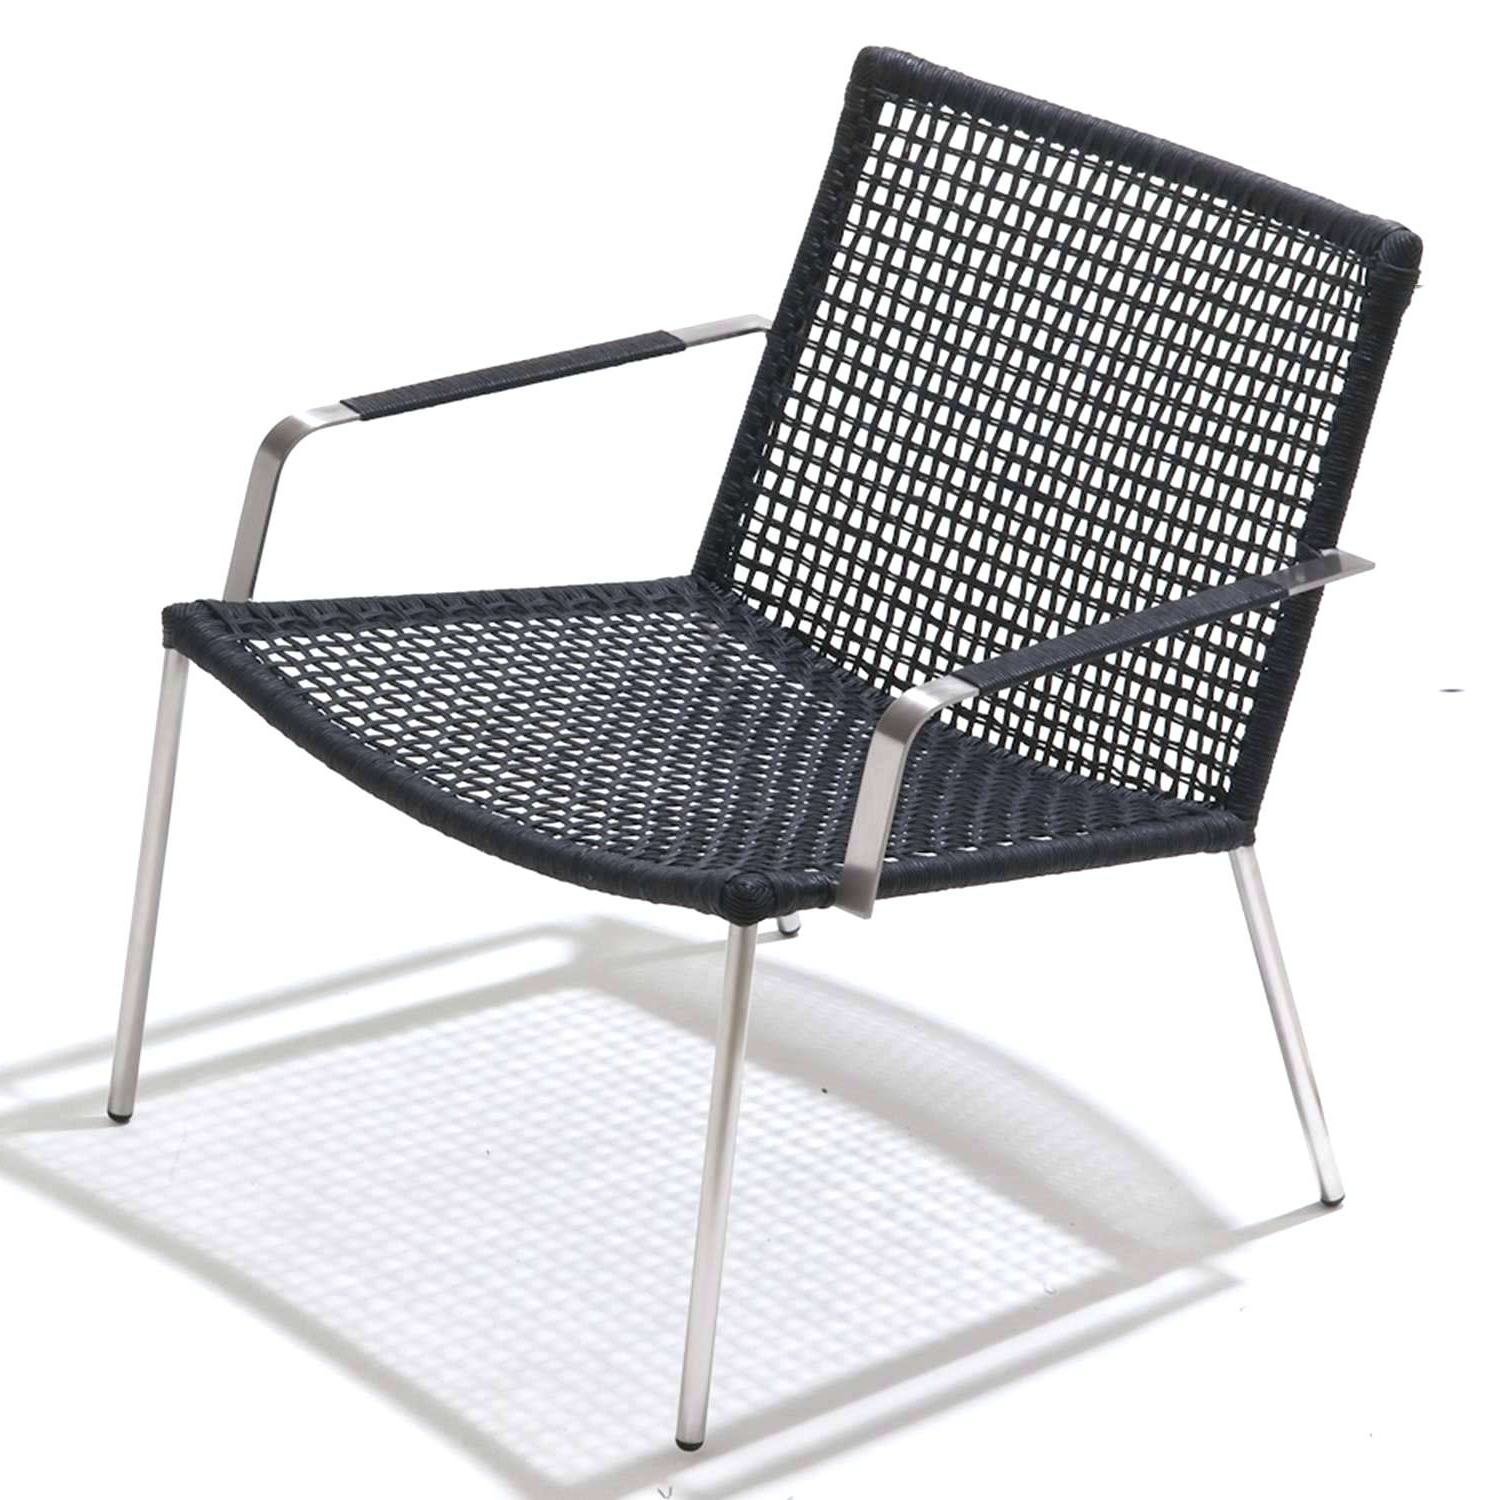 Convertible Chair : Lounge Chairs Best Rated Outdoor Chaise Lounge With Regard To Well Known Portable Outdoor Chaise Lounge Chairs (View 5 of 15)